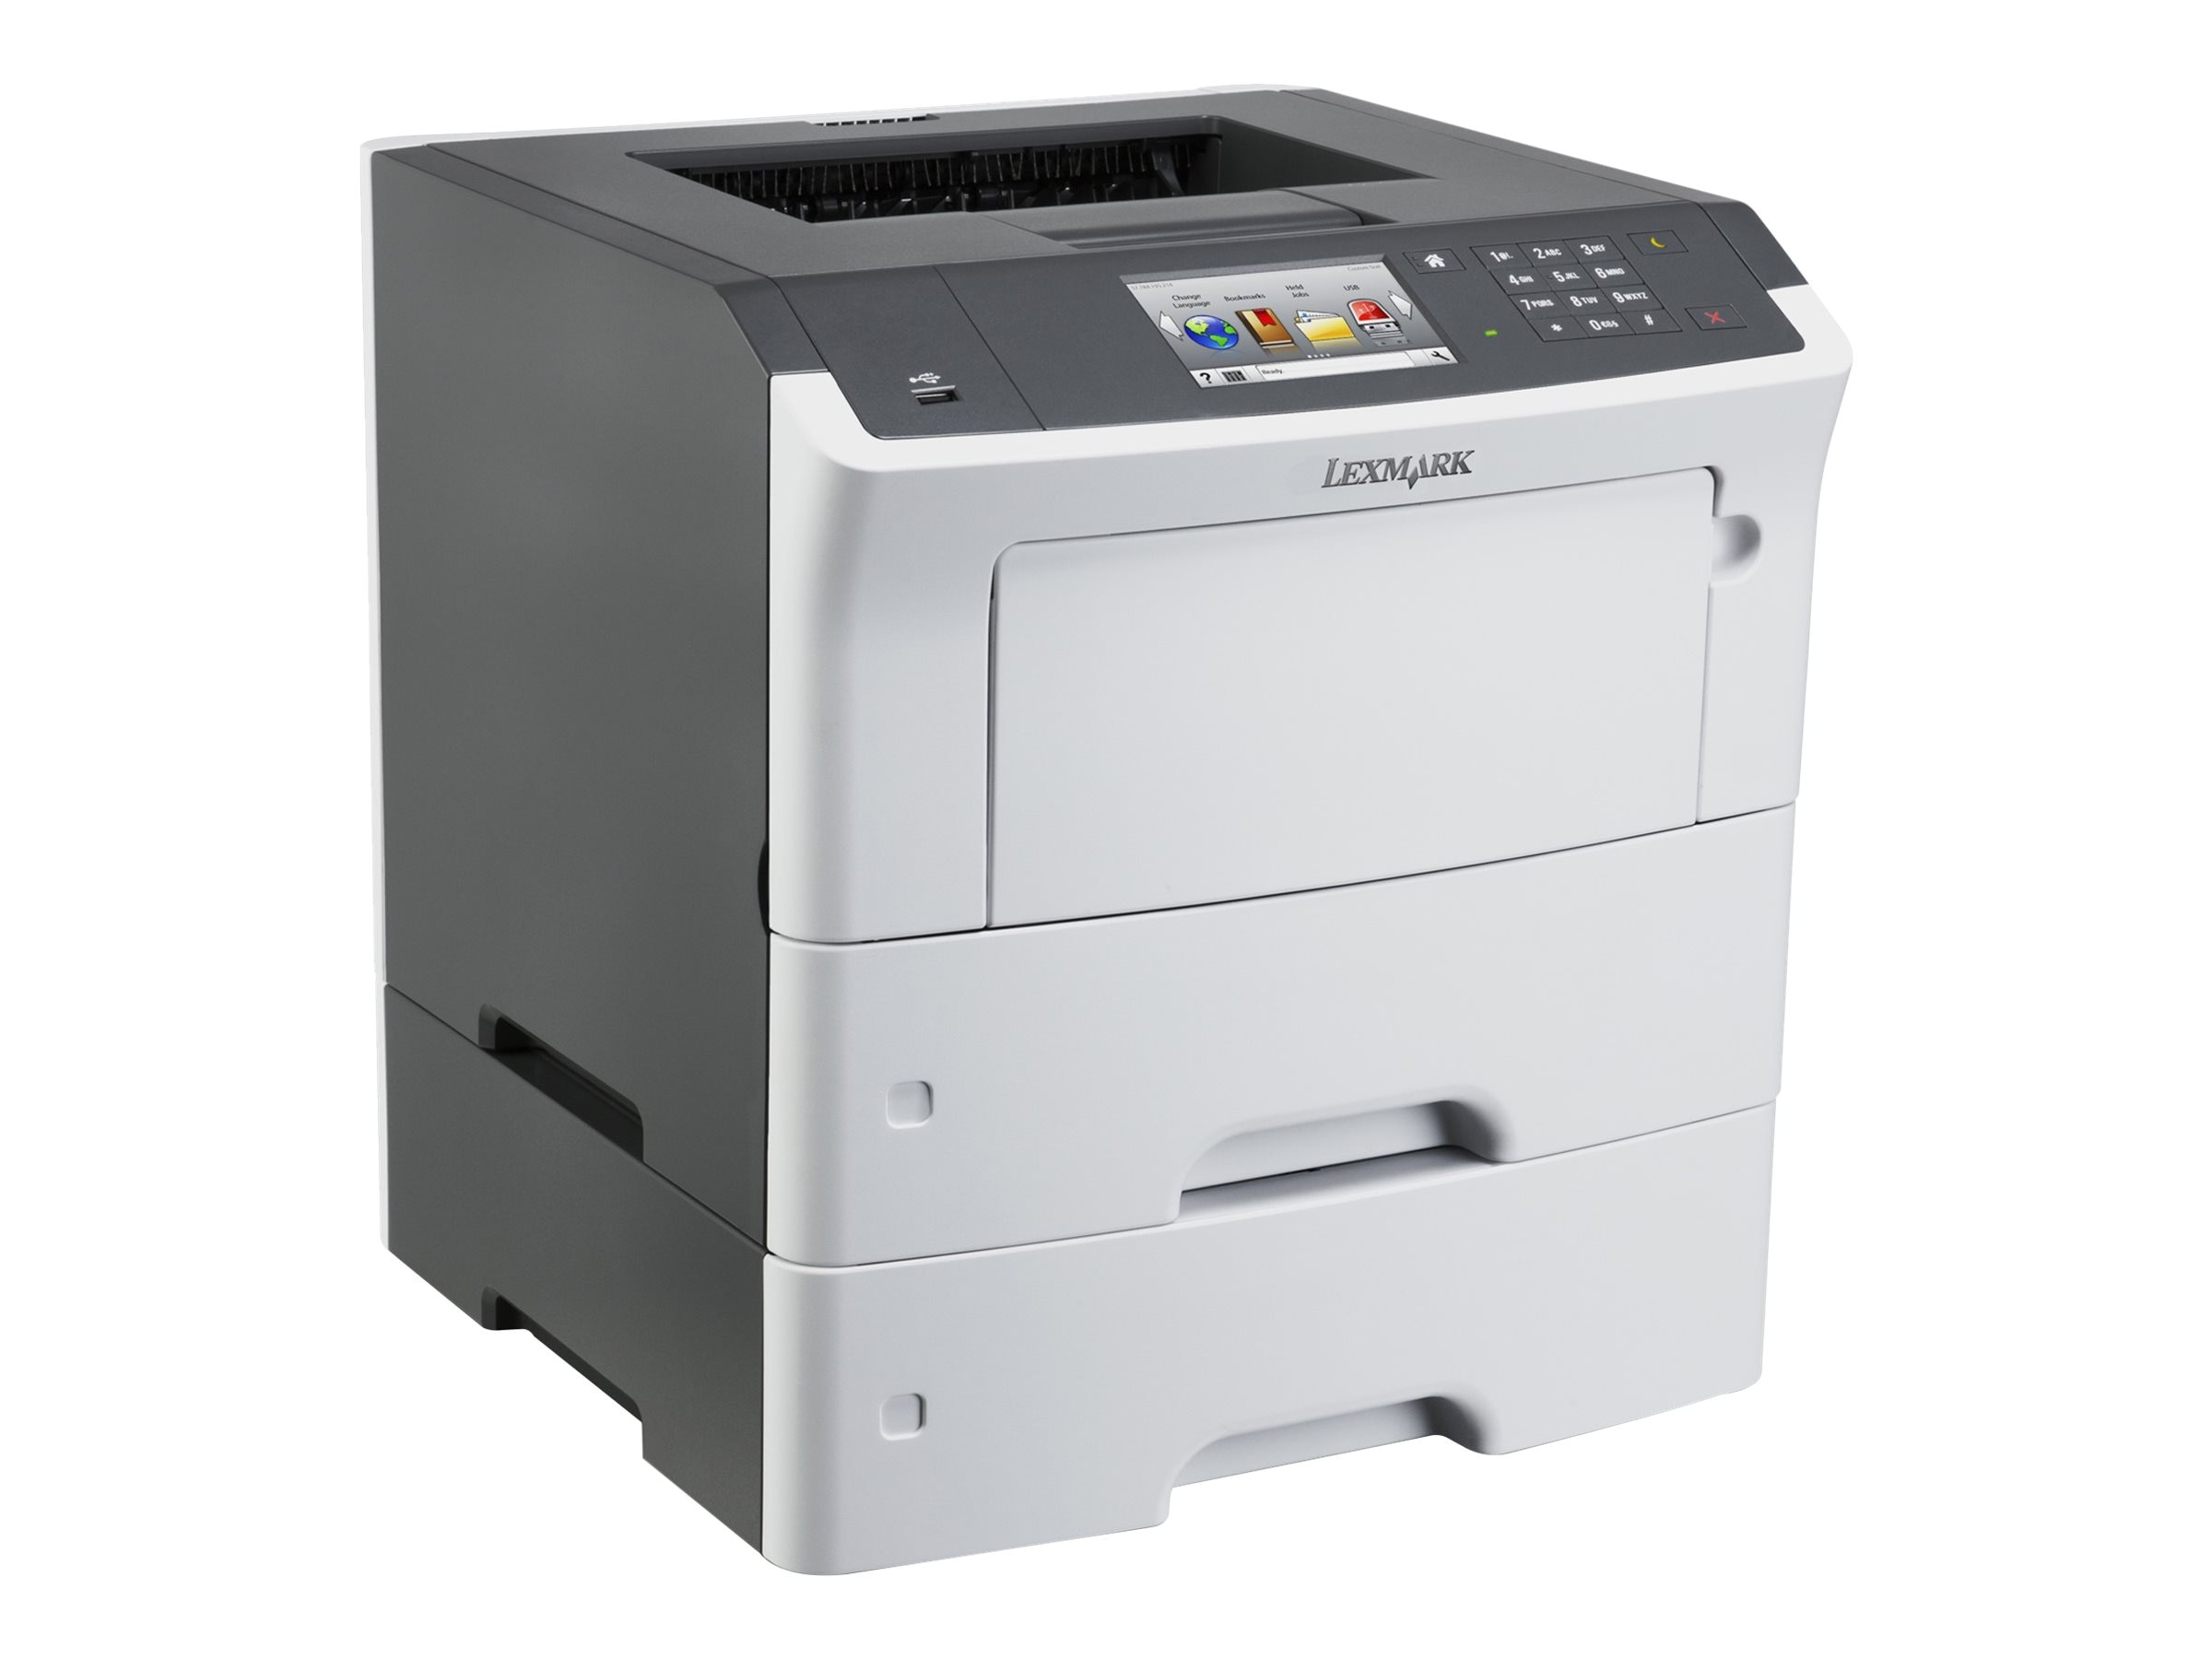 Lexmark MS610dte Monochrome Laser Printer - HV (TAA Compliant), 35ST551